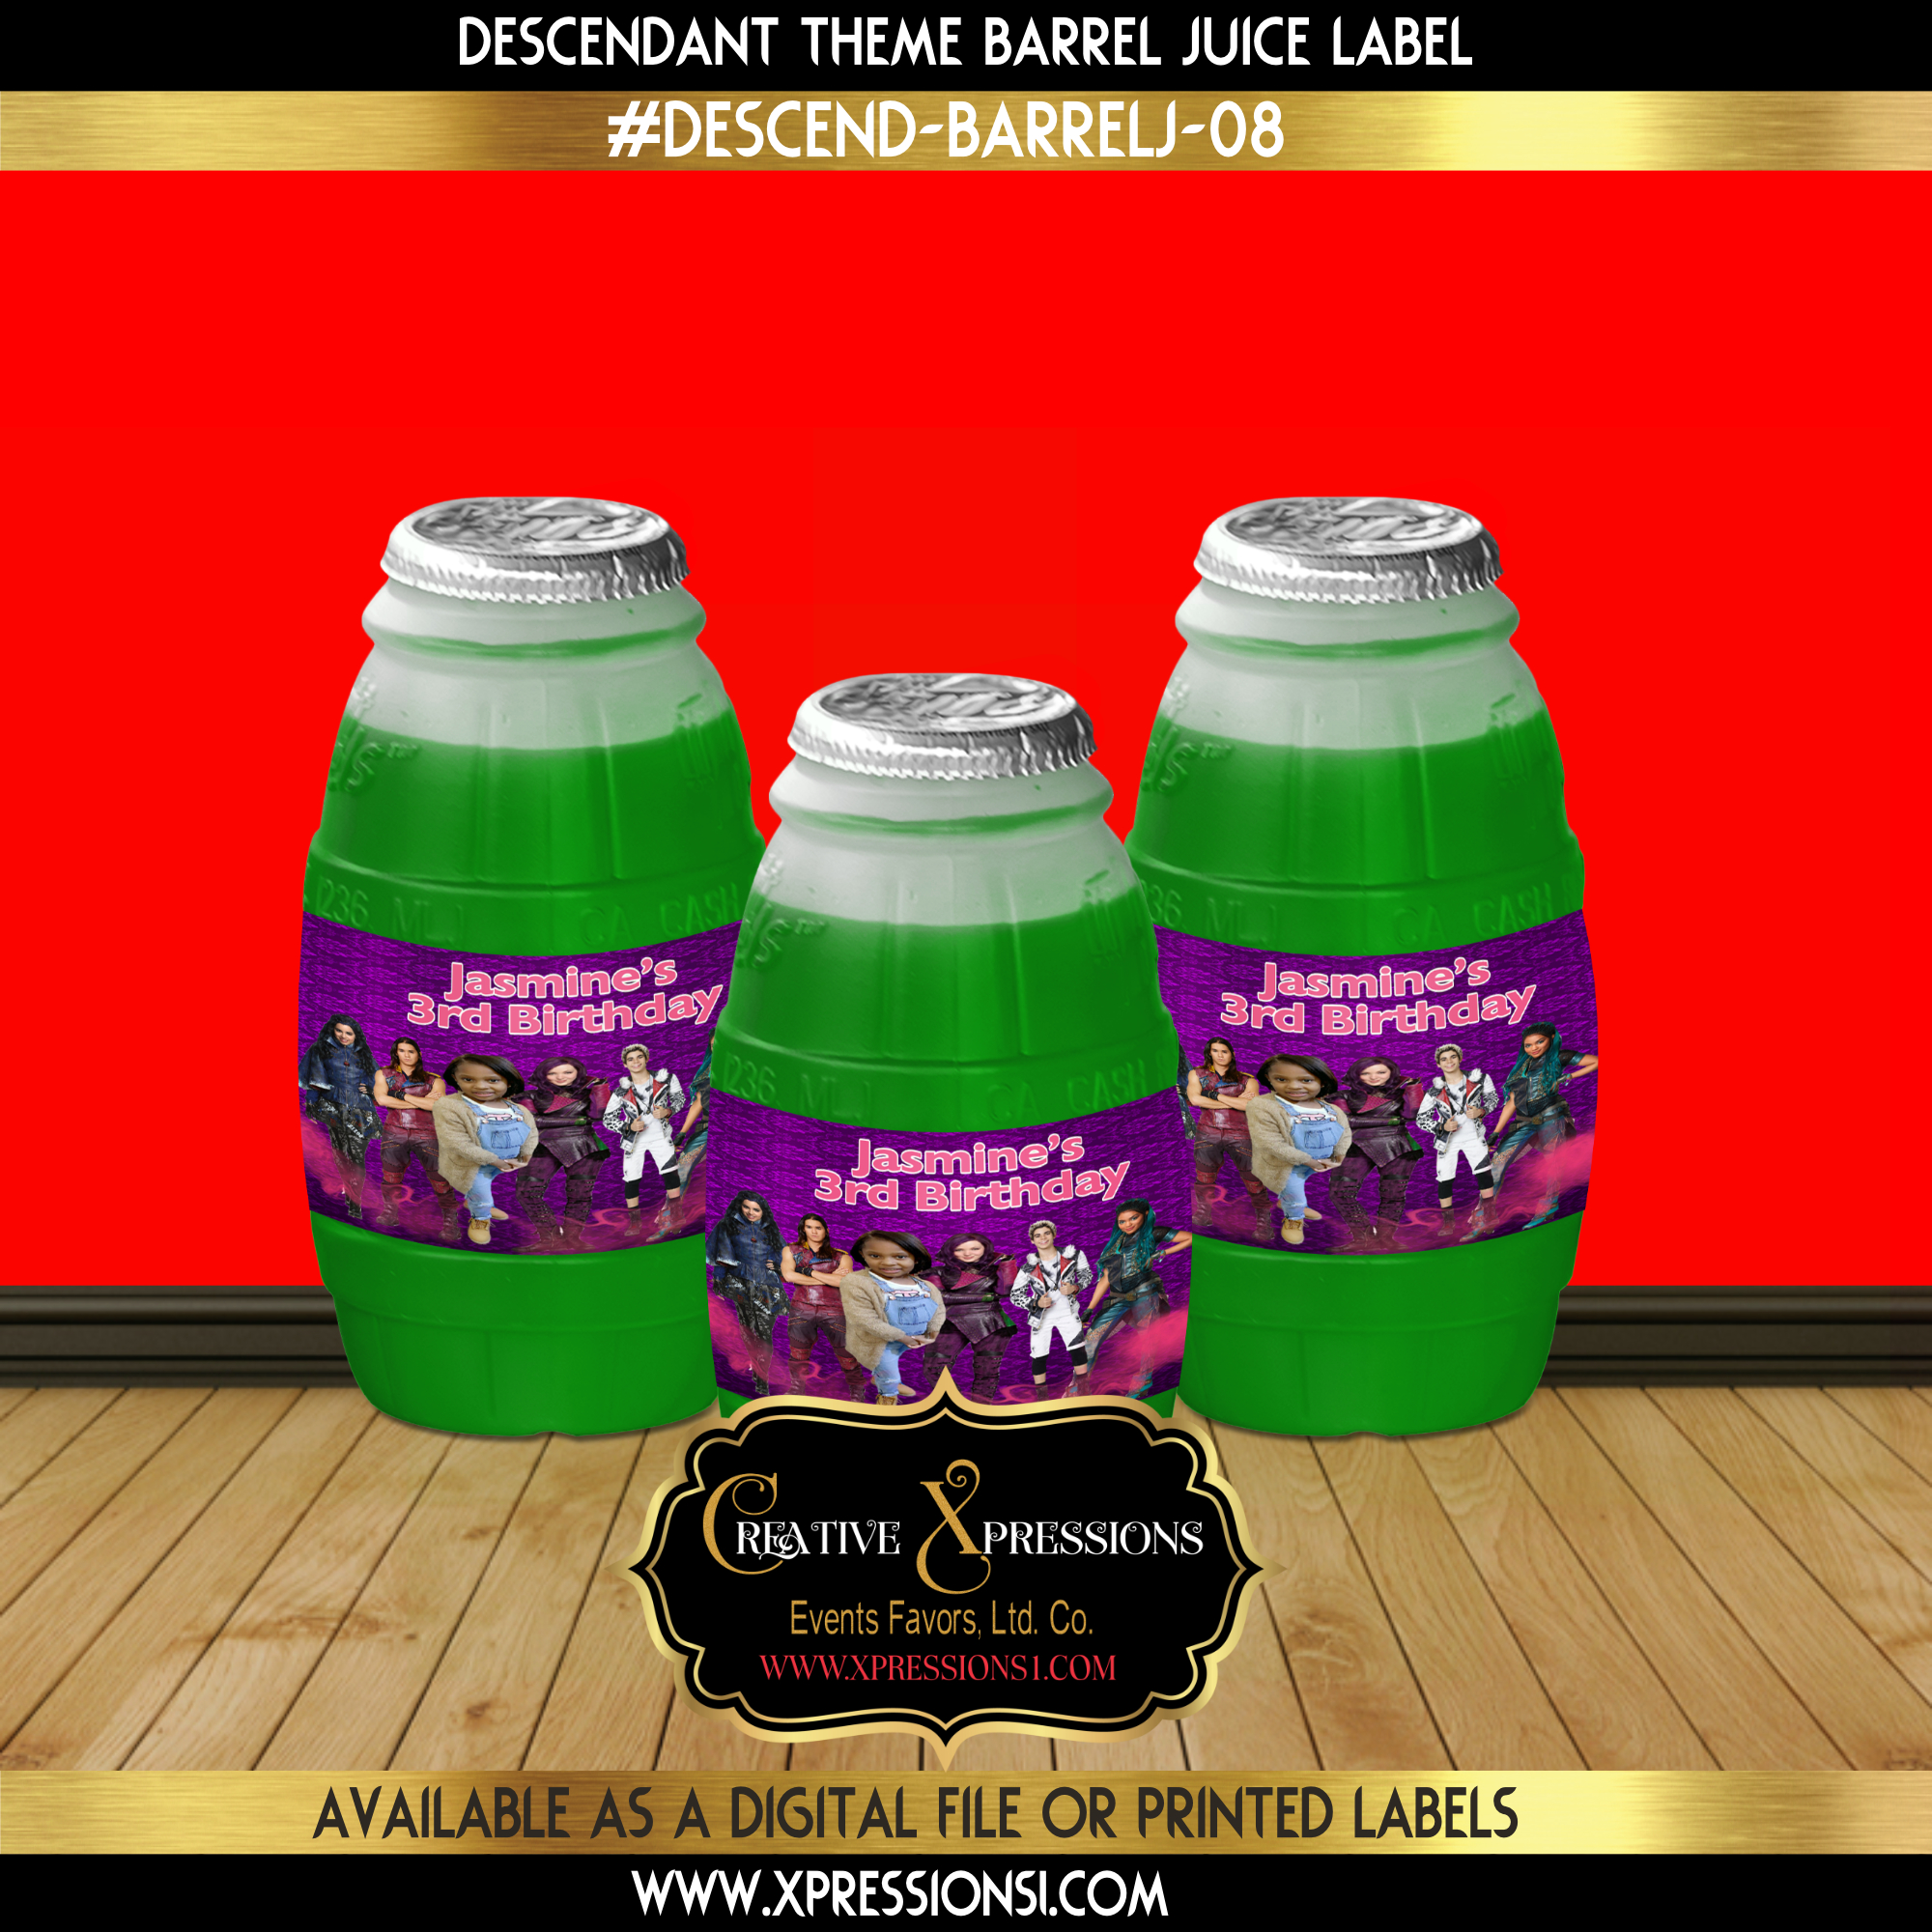 Descendant Barrel Juice Wrapper